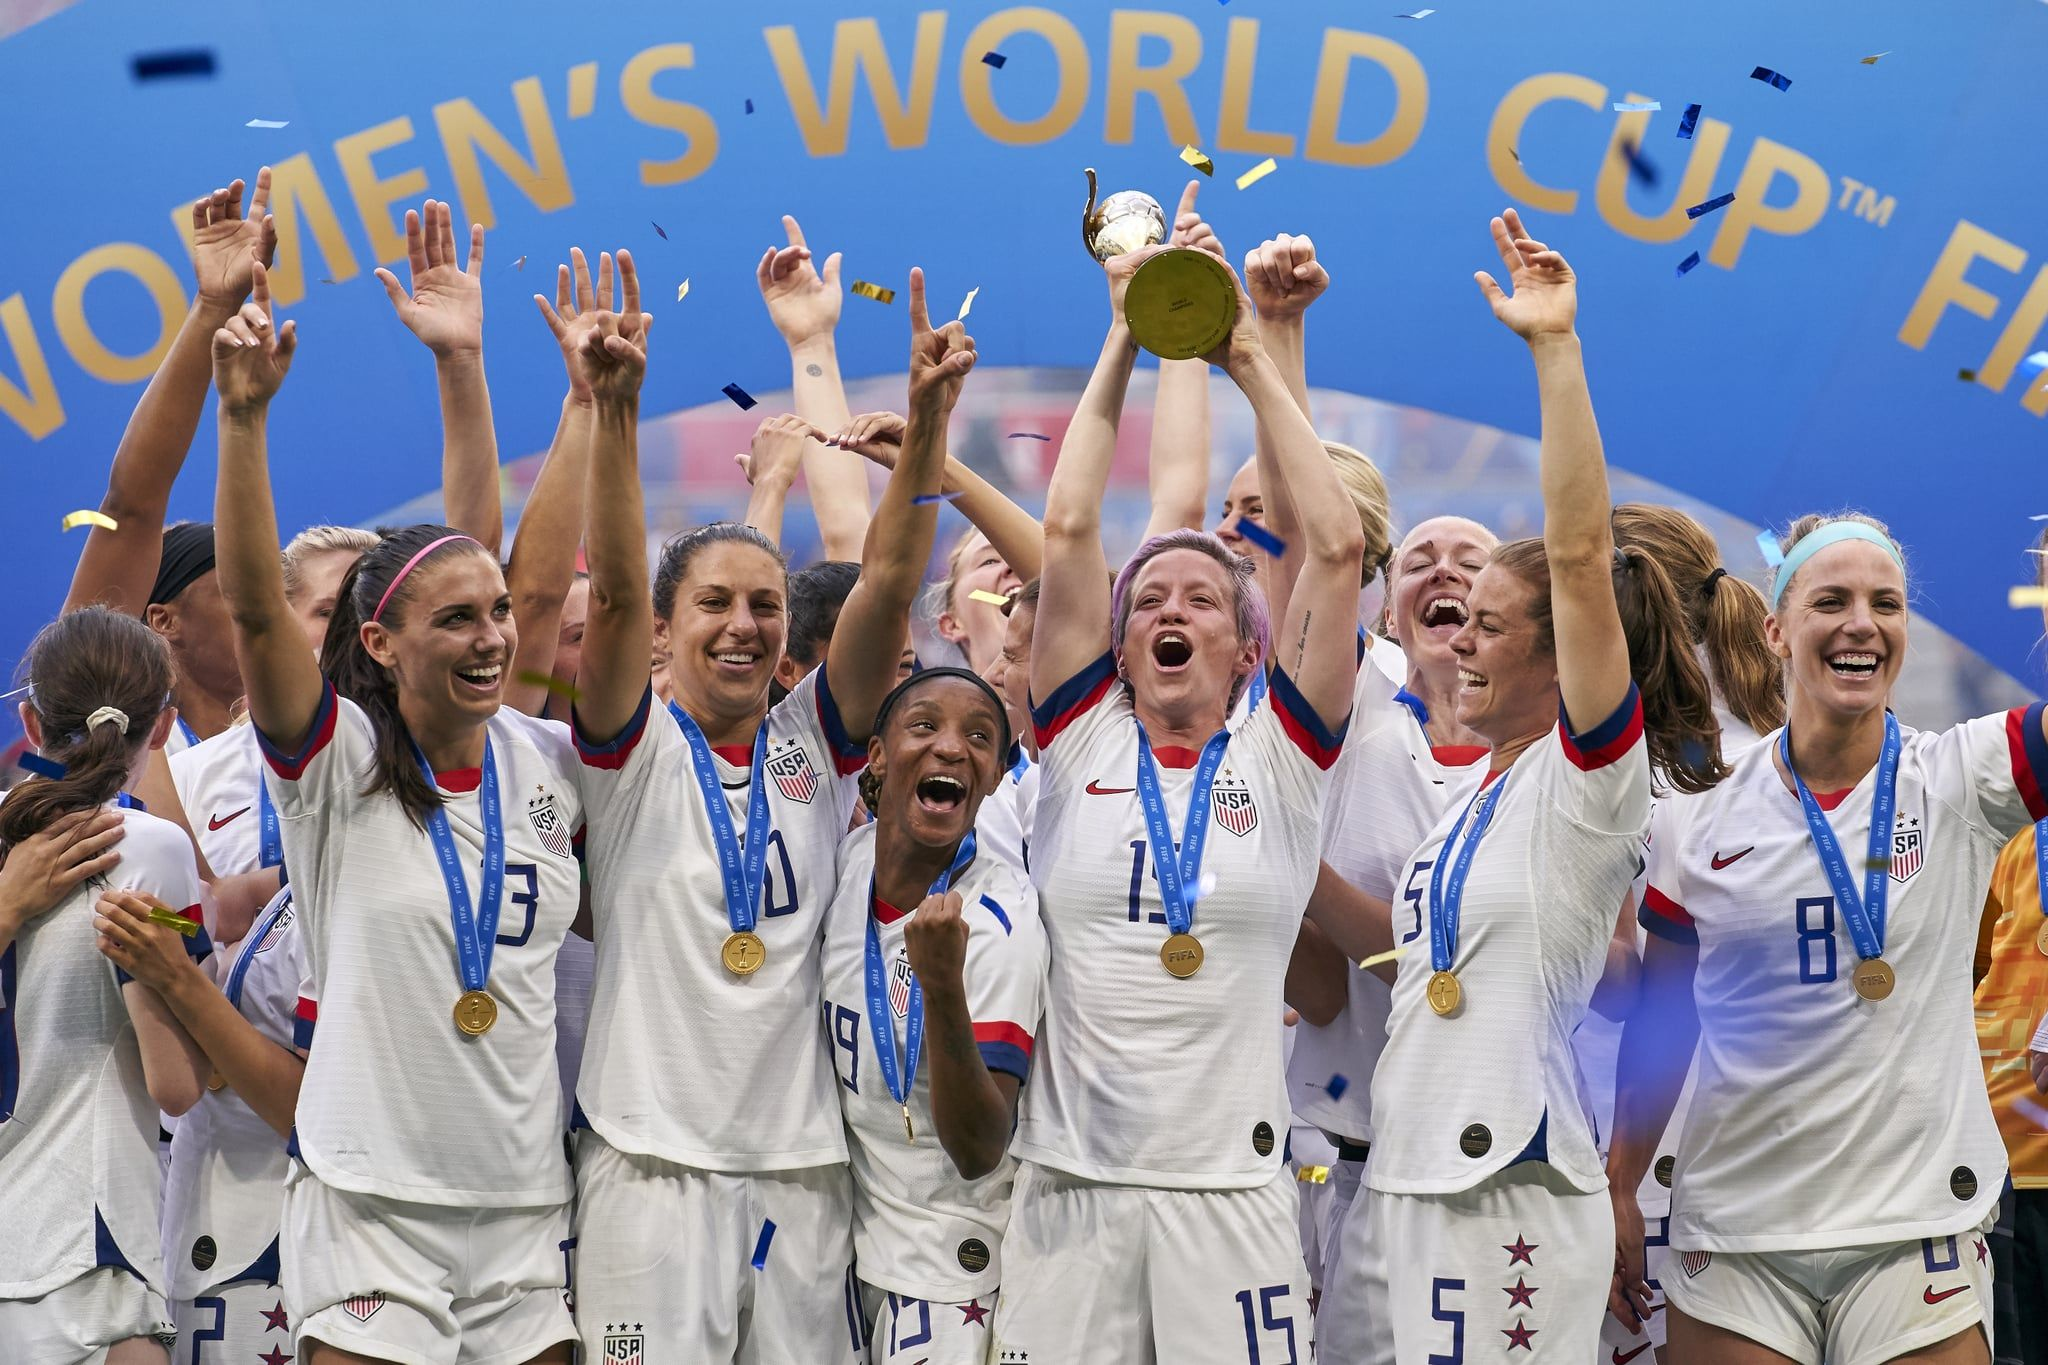 Every Record The Amazing Us Women S Soccer Team Broke At The 2019 World Cup Women S Soccer Team Womens Soccer